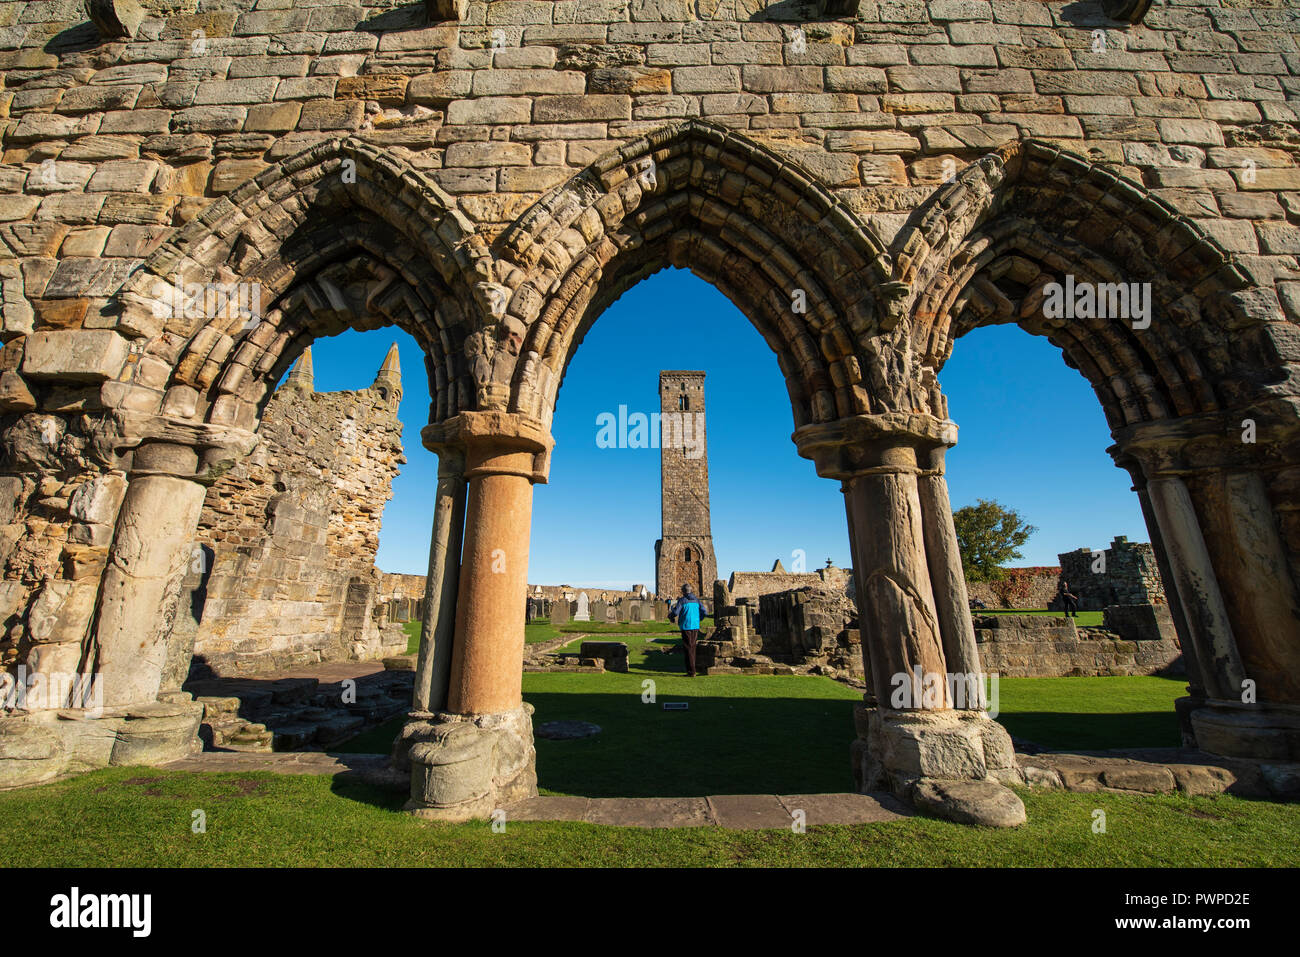 St. Andrews Cathedral and St. Rule's Tower, St Andrews, Fife, Scotland. - Stock Image